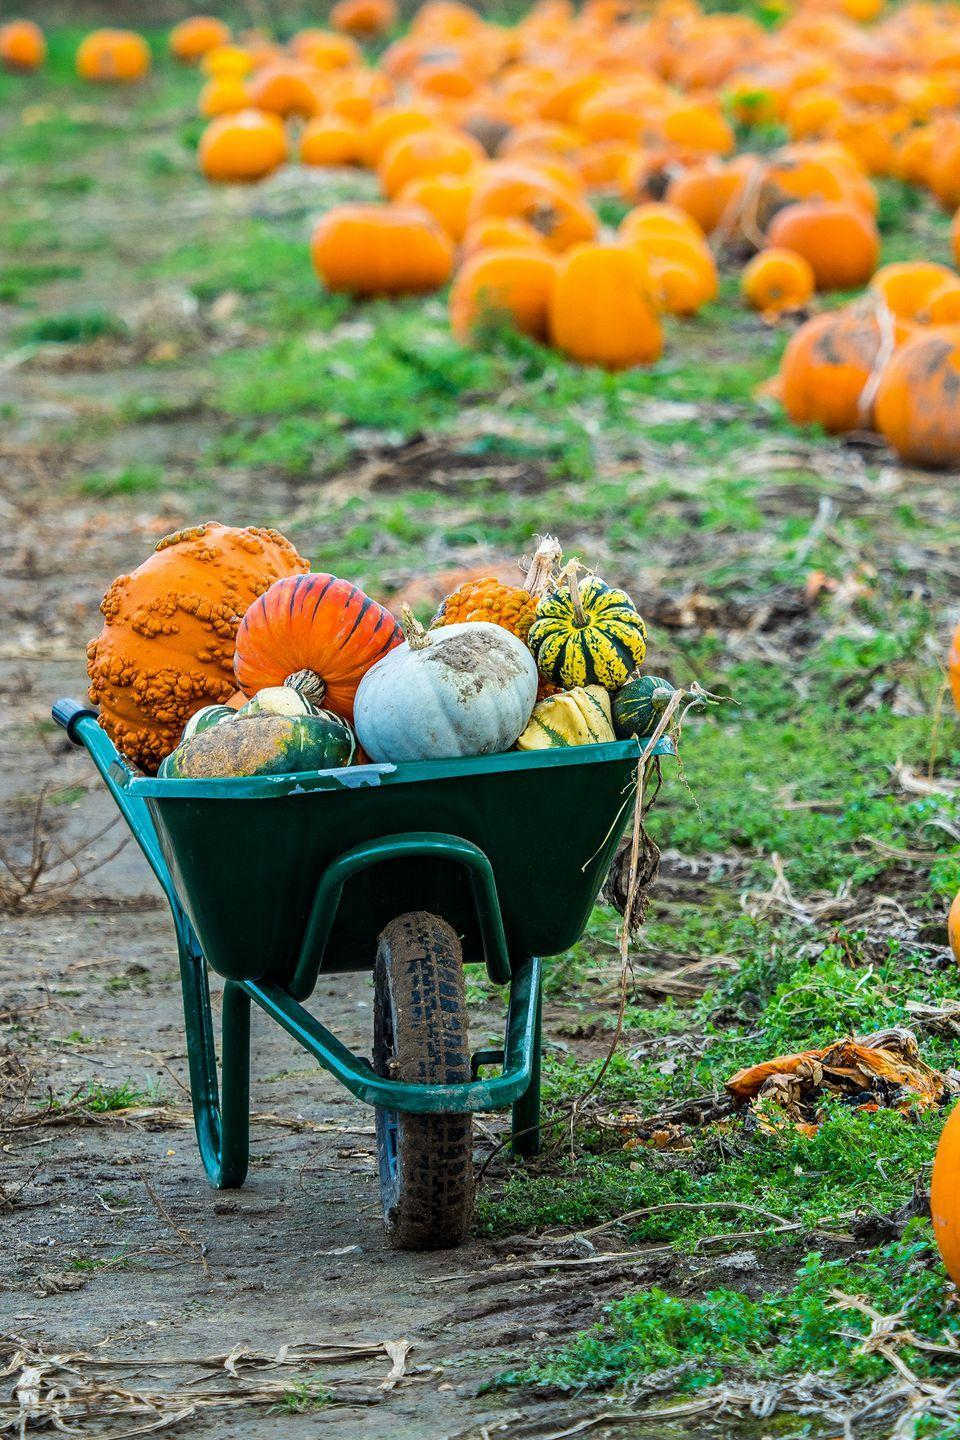 """<p>Each year, <a href=""""https://www.thepumpkinpatch.com/"""" rel=""""nofollow noopener"""" target=""""_blank"""" data-ylk=""""slk:the Pumpkin Patch"""" class=""""link rapid-noclick-resp"""">the Pumpkin Patch</a> reveals a new and <a href=""""https://www.countryliving.com/life/travel/g22717241/corn-maze-near-me/"""" rel=""""nofollow noopener"""" target=""""_blank"""" data-ylk=""""slk:elaborate corn maze"""" class=""""link rapid-noclick-resp"""">elaborate corn maze</a>. With more than 1 million pounds of pumpkins grown there and free hayrides offered daily, we have a feeling your family will want to make visiting this iconic <a href=""""https://go.redirectingat.com?id=74968X1596630&url=https%3A%2F%2Fwww.tripadvisor.com%2FAttraction_Review-g52024-d562041-Reviews-Sauvie_Island_Wildlife_Area-Portland_Oregon.html&sref=https%3A%2F%2Fwww.countryliving.com%2Flife%2Ftravel%2Fg21273436%2Fpumpkin-farms-near-me%2F"""" rel=""""nofollow noopener"""" target=""""_blank"""" data-ylk=""""slk:Sauvie Island"""" class=""""link rapid-noclick-resp"""">Sauvie Island</a> establishment a yearly tradition.</p><p><a class=""""link rapid-noclick-resp"""" href=""""https://go.redirectingat.com?id=74968X1596630&url=https%3A%2F%2Fwww.tripadvisor.com%2FAttractions-g52024-Activities-Portland_Oregon.html&sref=https%3A%2F%2Fwww.countryliving.com%2Flife%2Ftravel%2Fg21273436%2Fpumpkin-farms-near-me%2F"""" rel=""""nofollow noopener"""" target=""""_blank"""" data-ylk=""""slk:PLAN YOUR TRIP"""">PLAN YOUR TRIP</a></p>"""